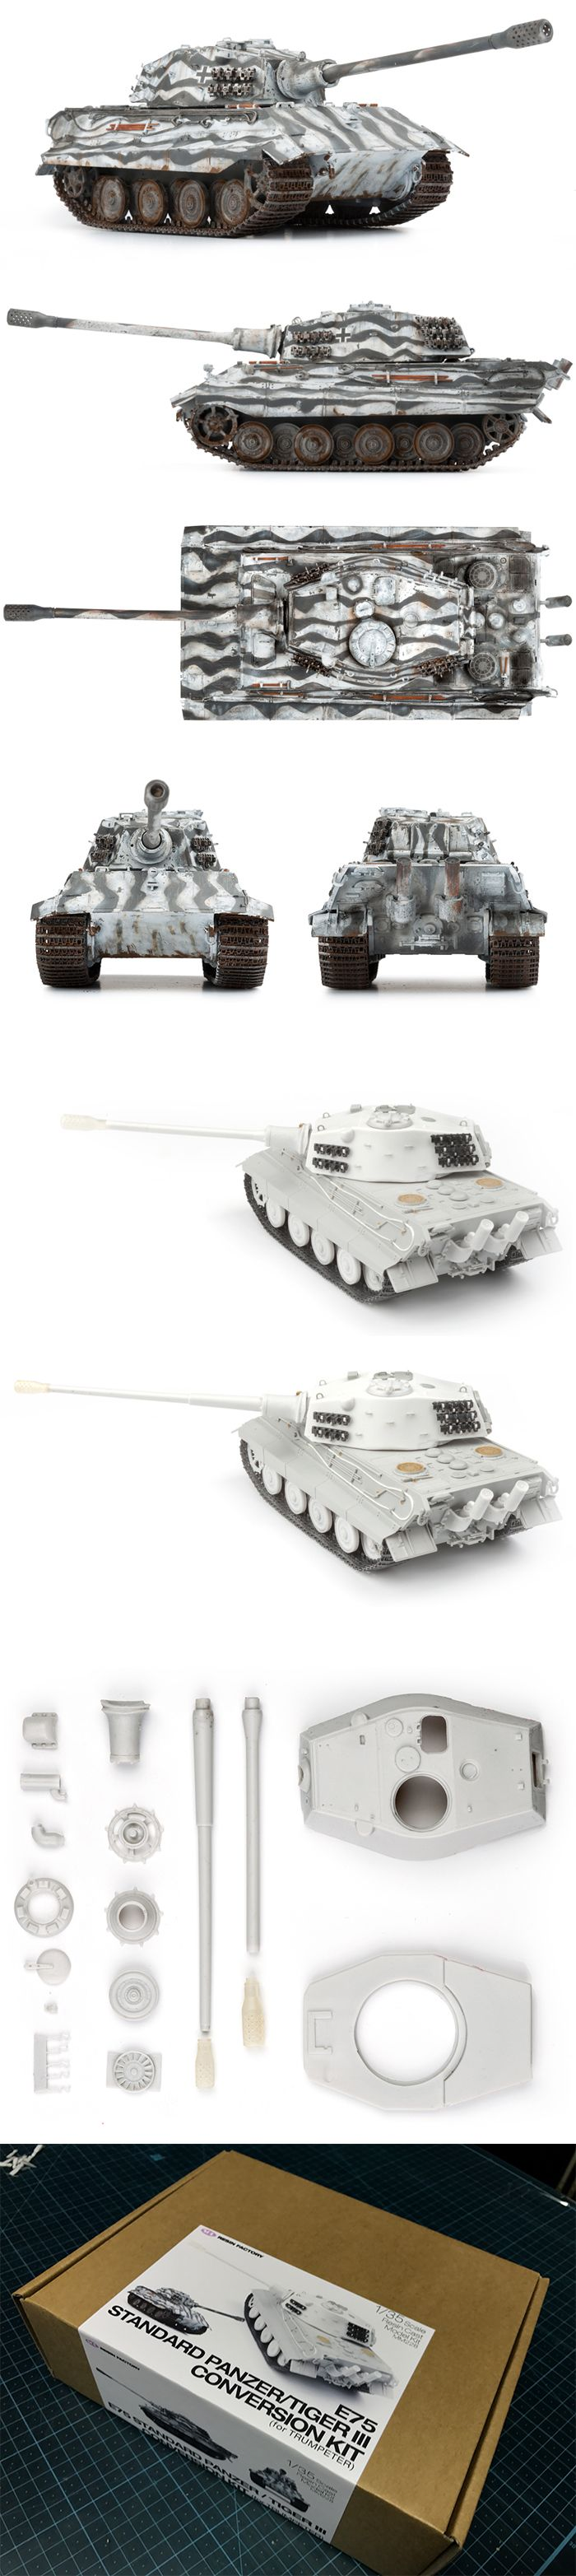 WWII German E75 Standard Panzer/Tiger III 1/35scale Conversion Kit (for Trumpeter)